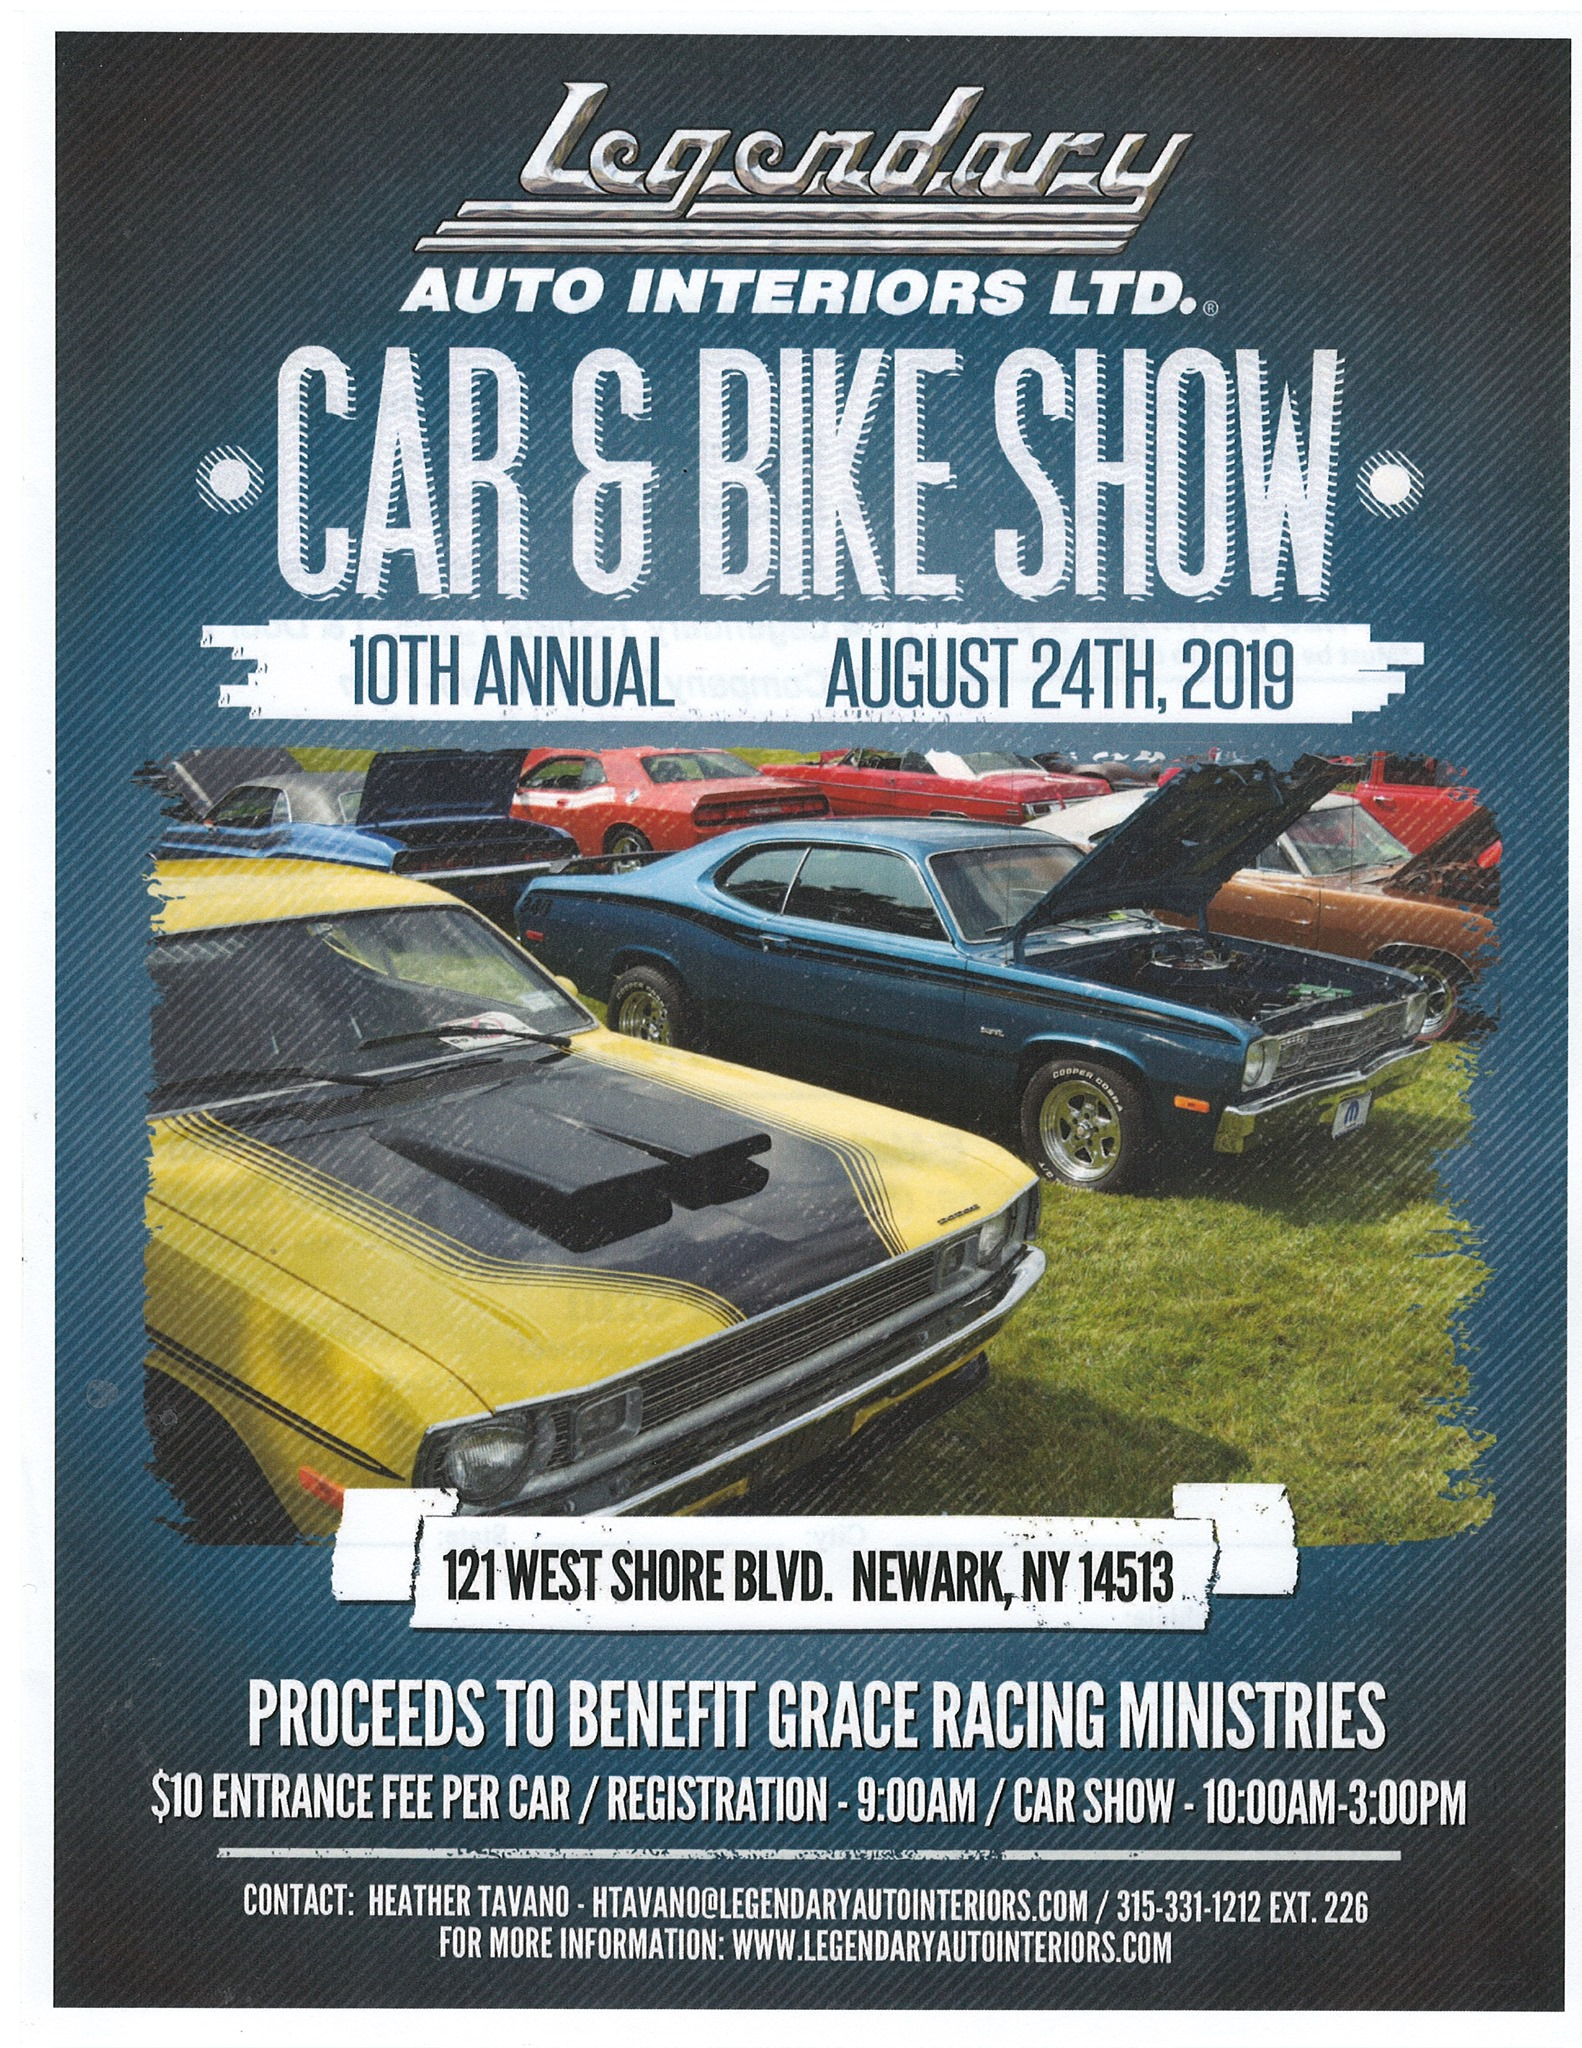 Legendary Auto Interiors 10th Annual Car & Bike Show 2019 @ Legendary Auto Interiors